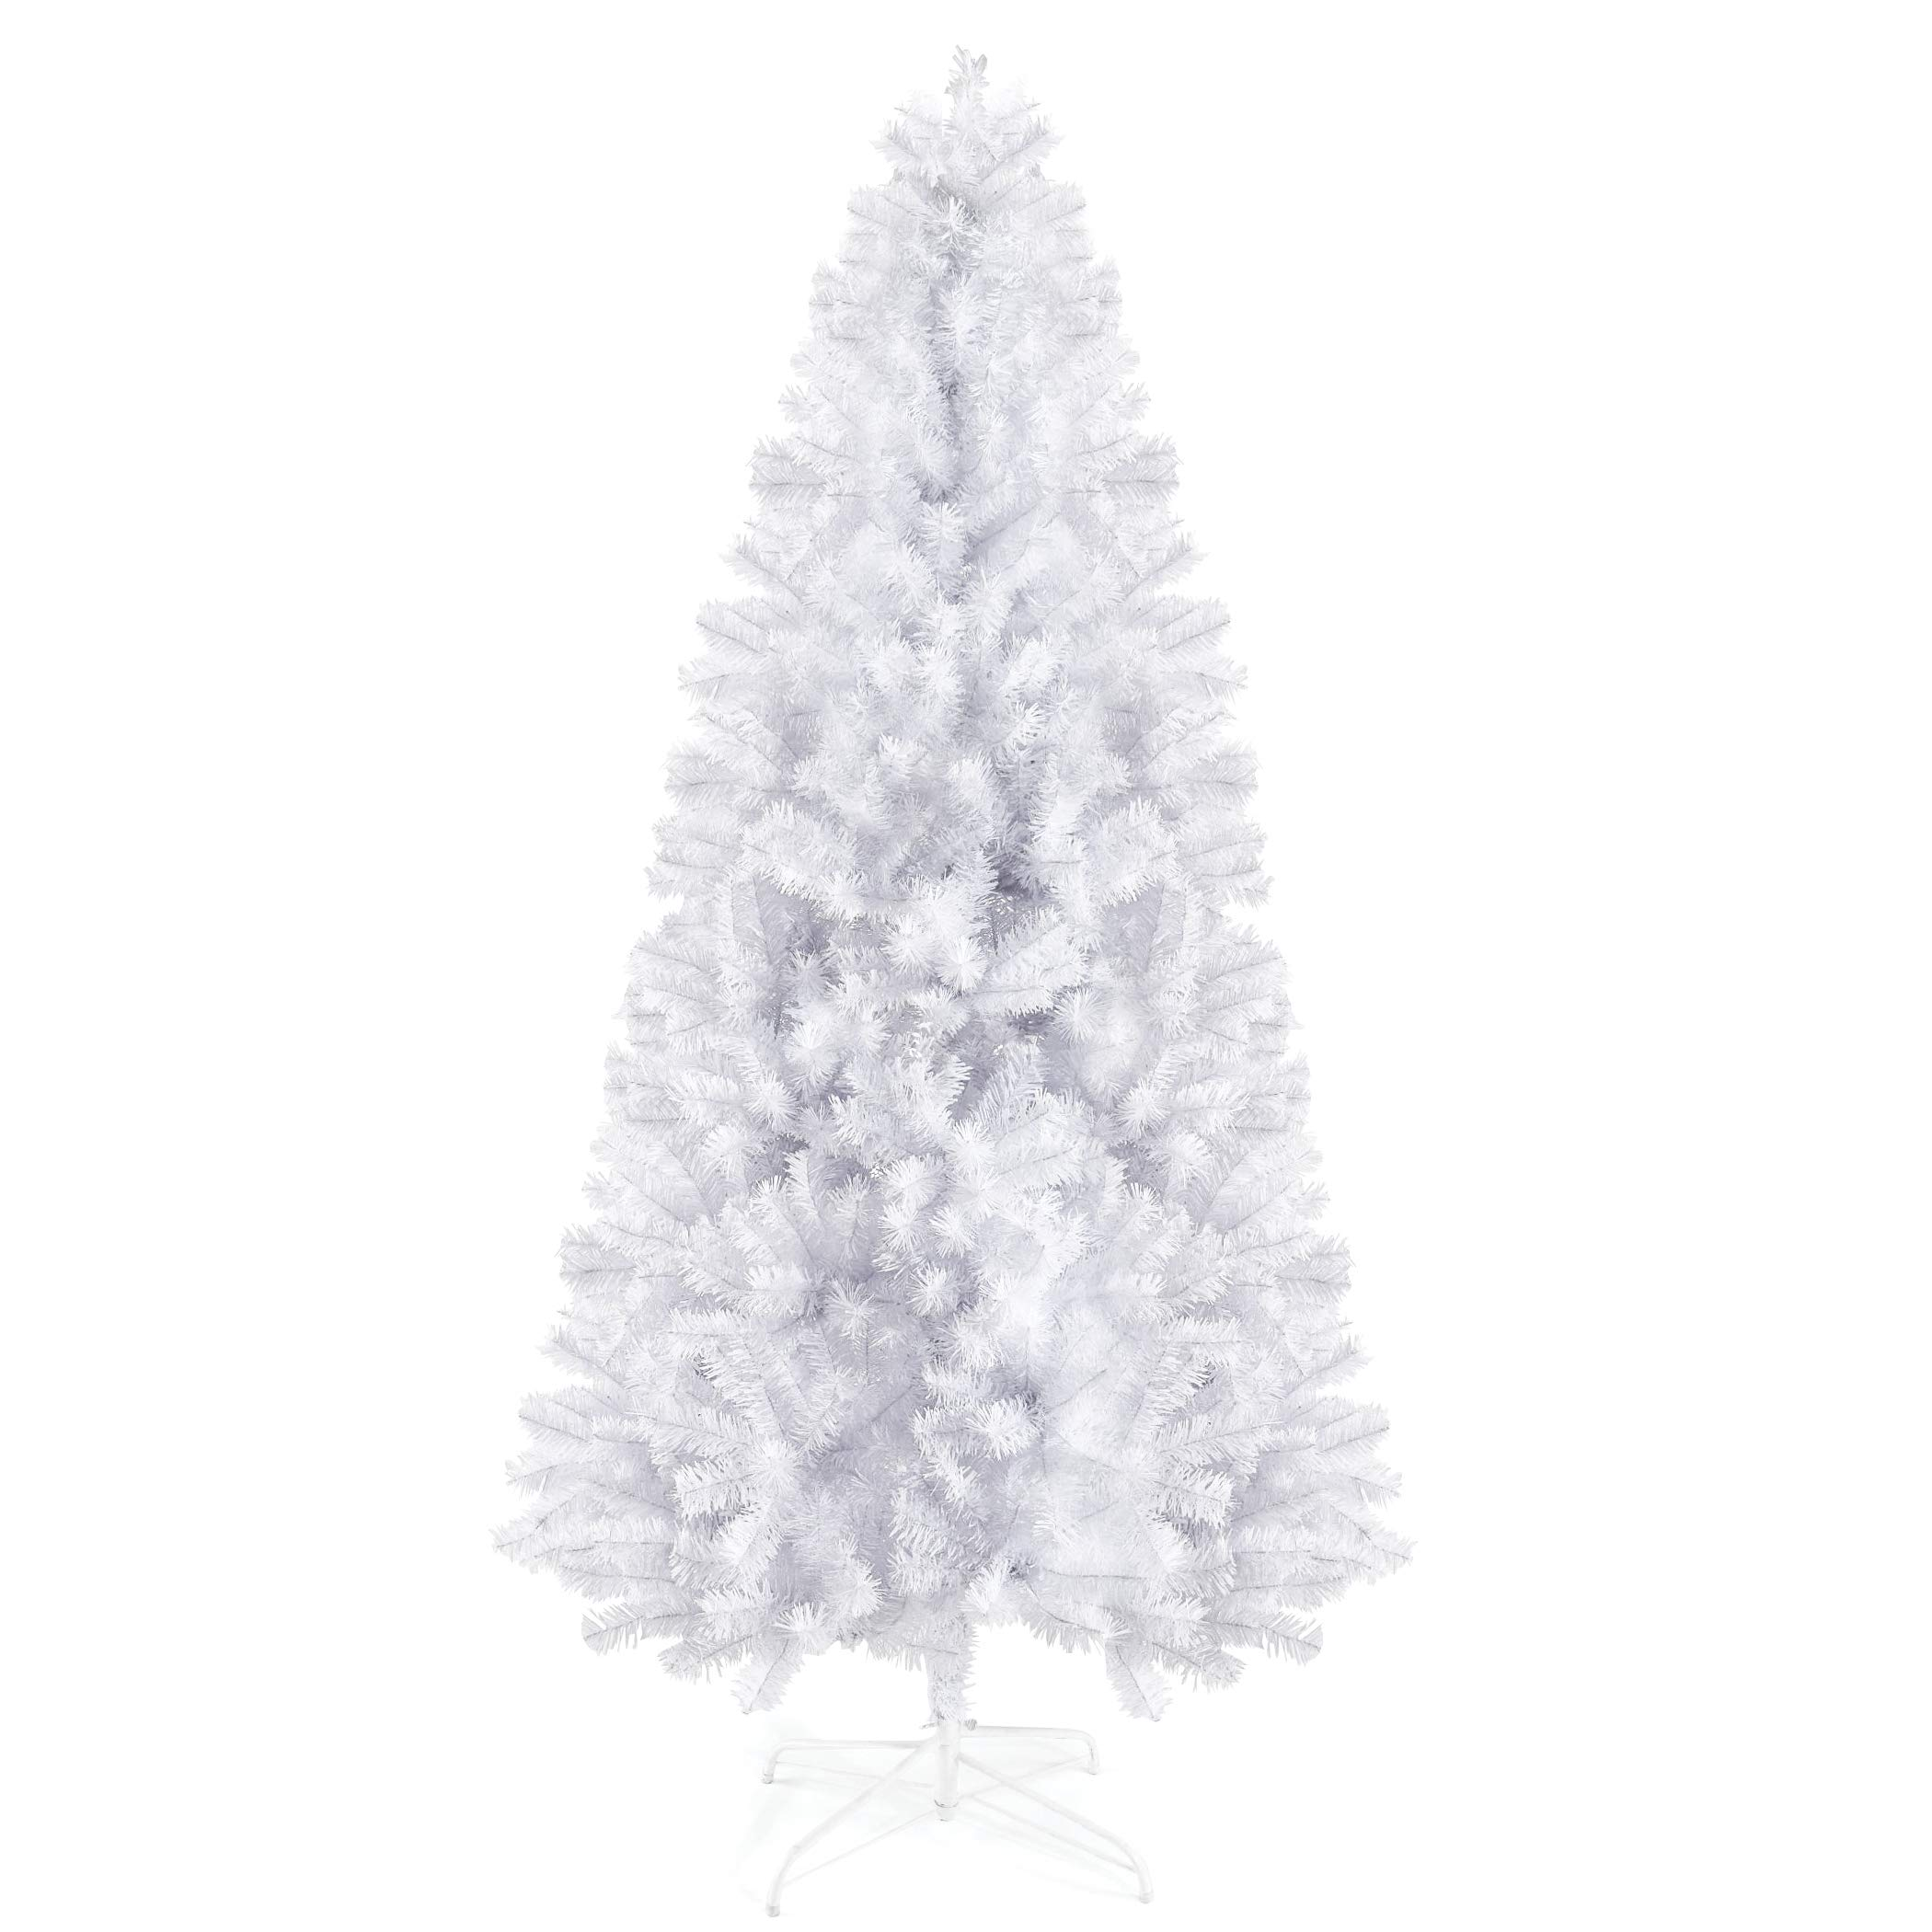 Prextex 6 Feet White Christmas Tree - Premium Artificial Spruce Hinged Snowy Solid White Christmas Tree Lightweight and Easy to Assemble with Christmas Tree Metal Stand 1200 Tips